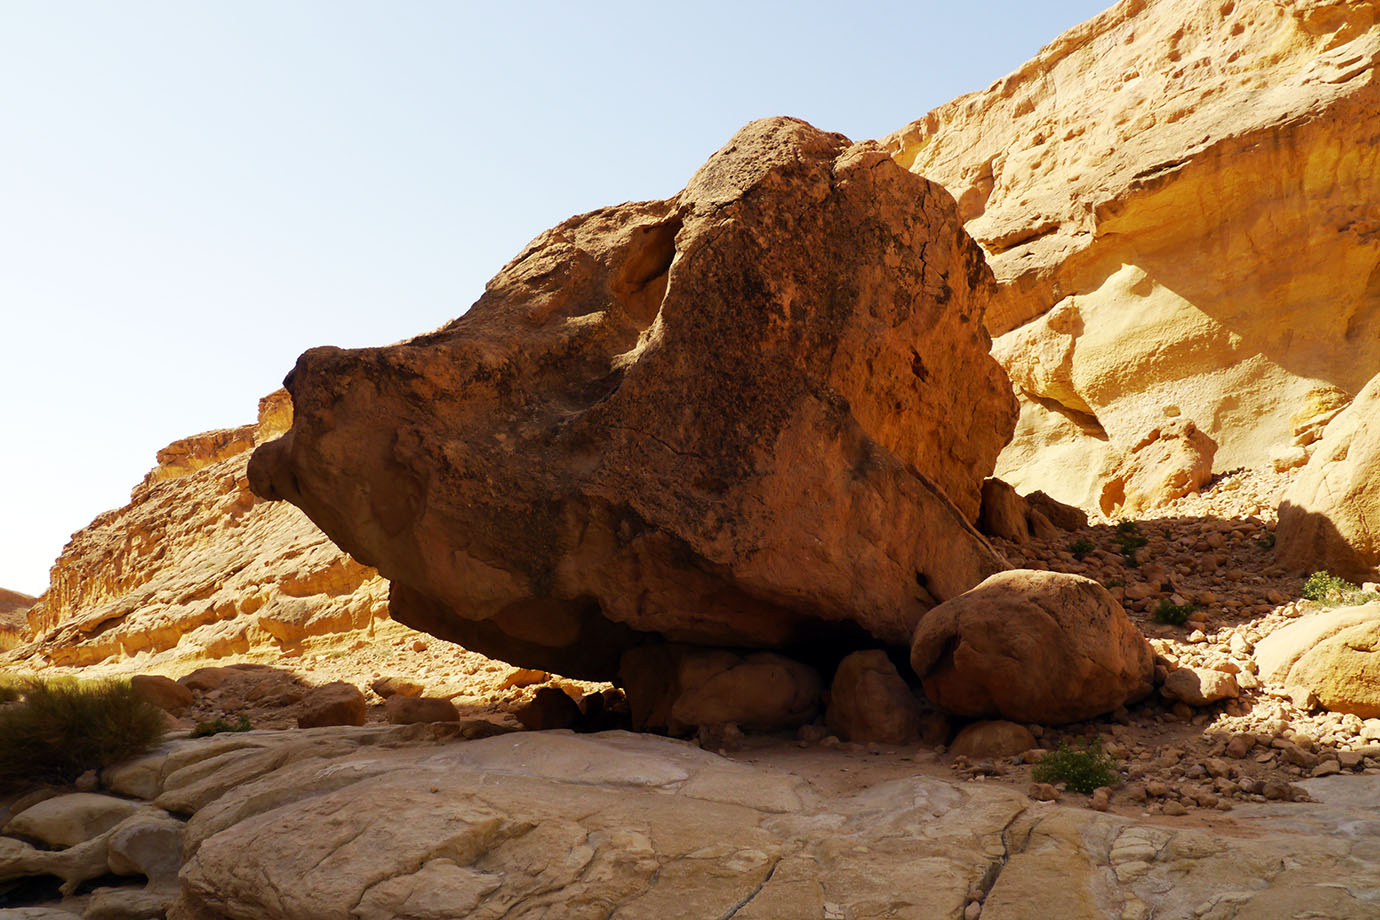 star-wars-episode-iv-a-new-hope-canyon6